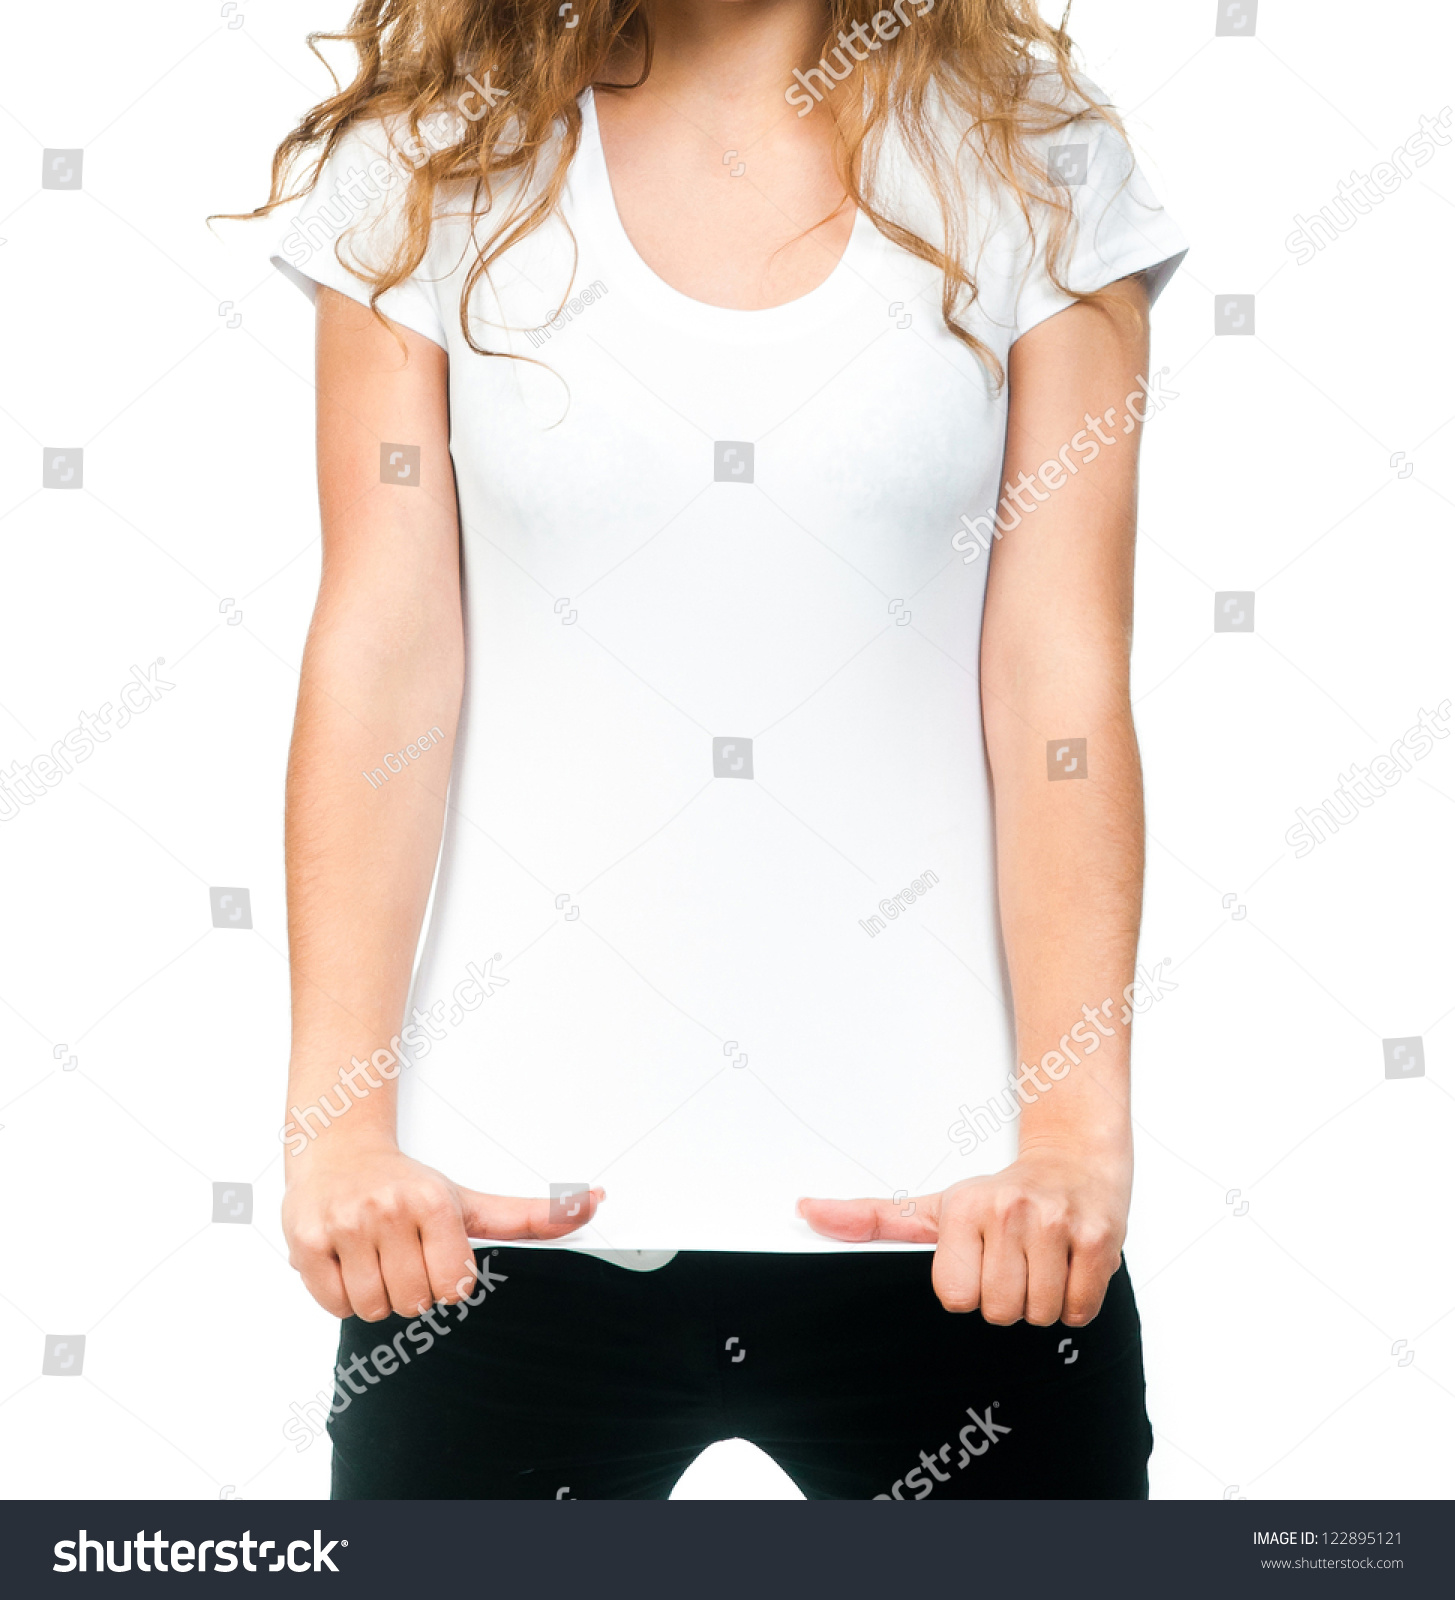 Young Beautiful Women Posing Blank White Stock Photo 122895121 ...